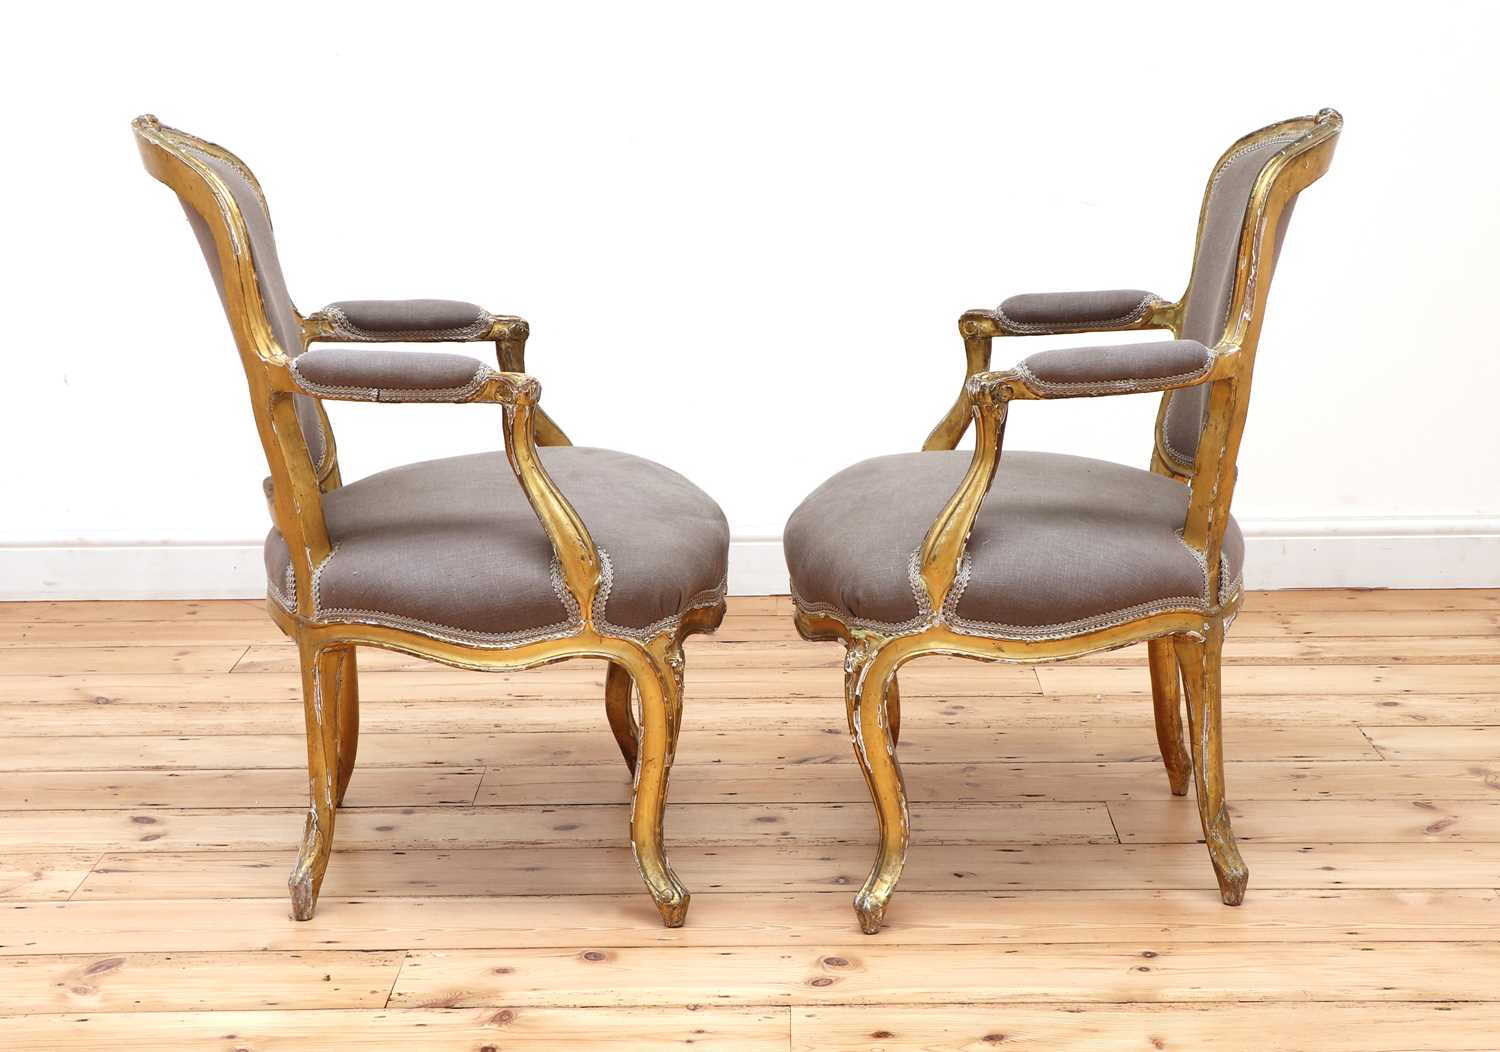 A pair of gilt-framed Louis XV-style armchairs, - Image 4 of 8